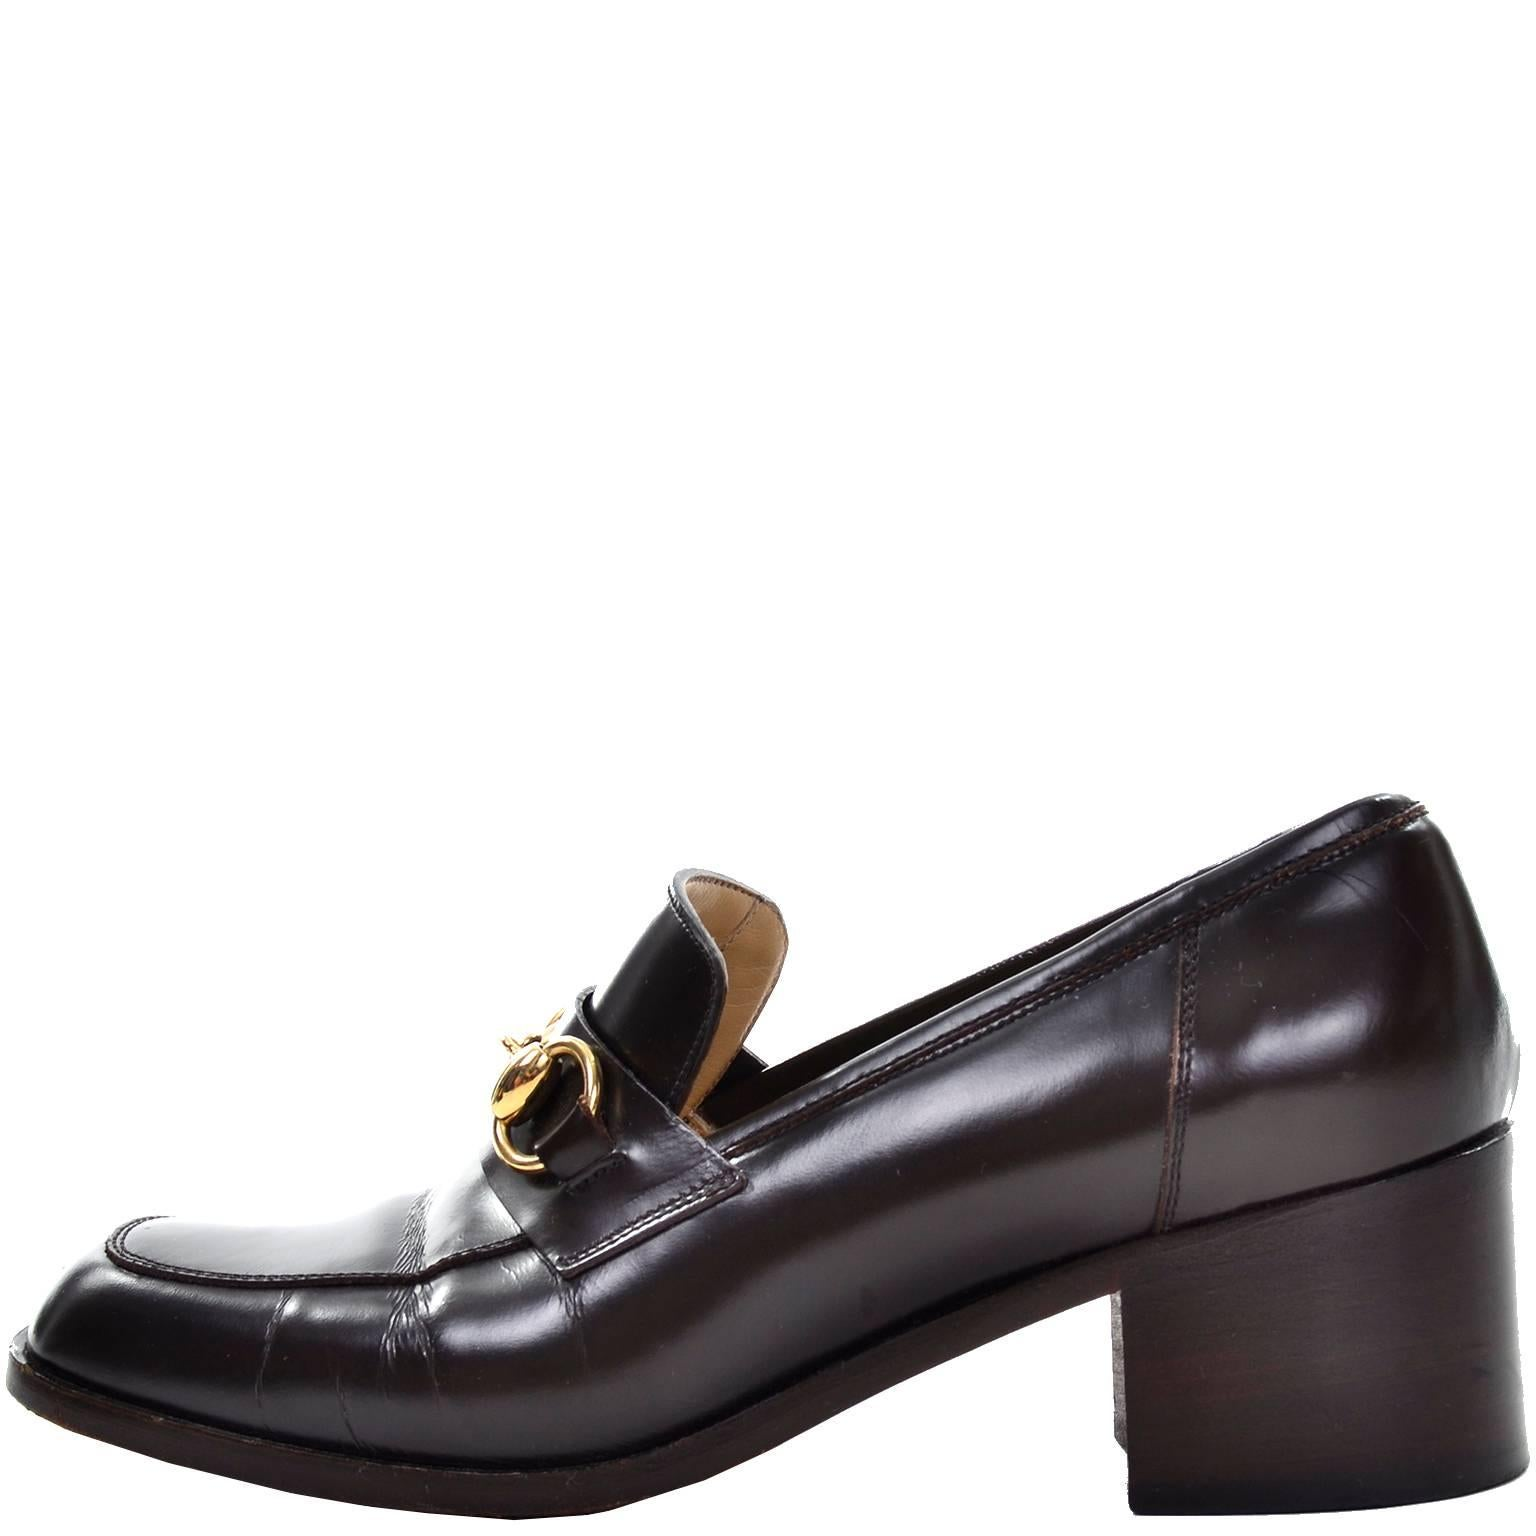 90f4c99ec Gucci Vintage Shoes Brown Leather Loafers w/ Horsebit Buckles Size 7.5 at  1stdibs